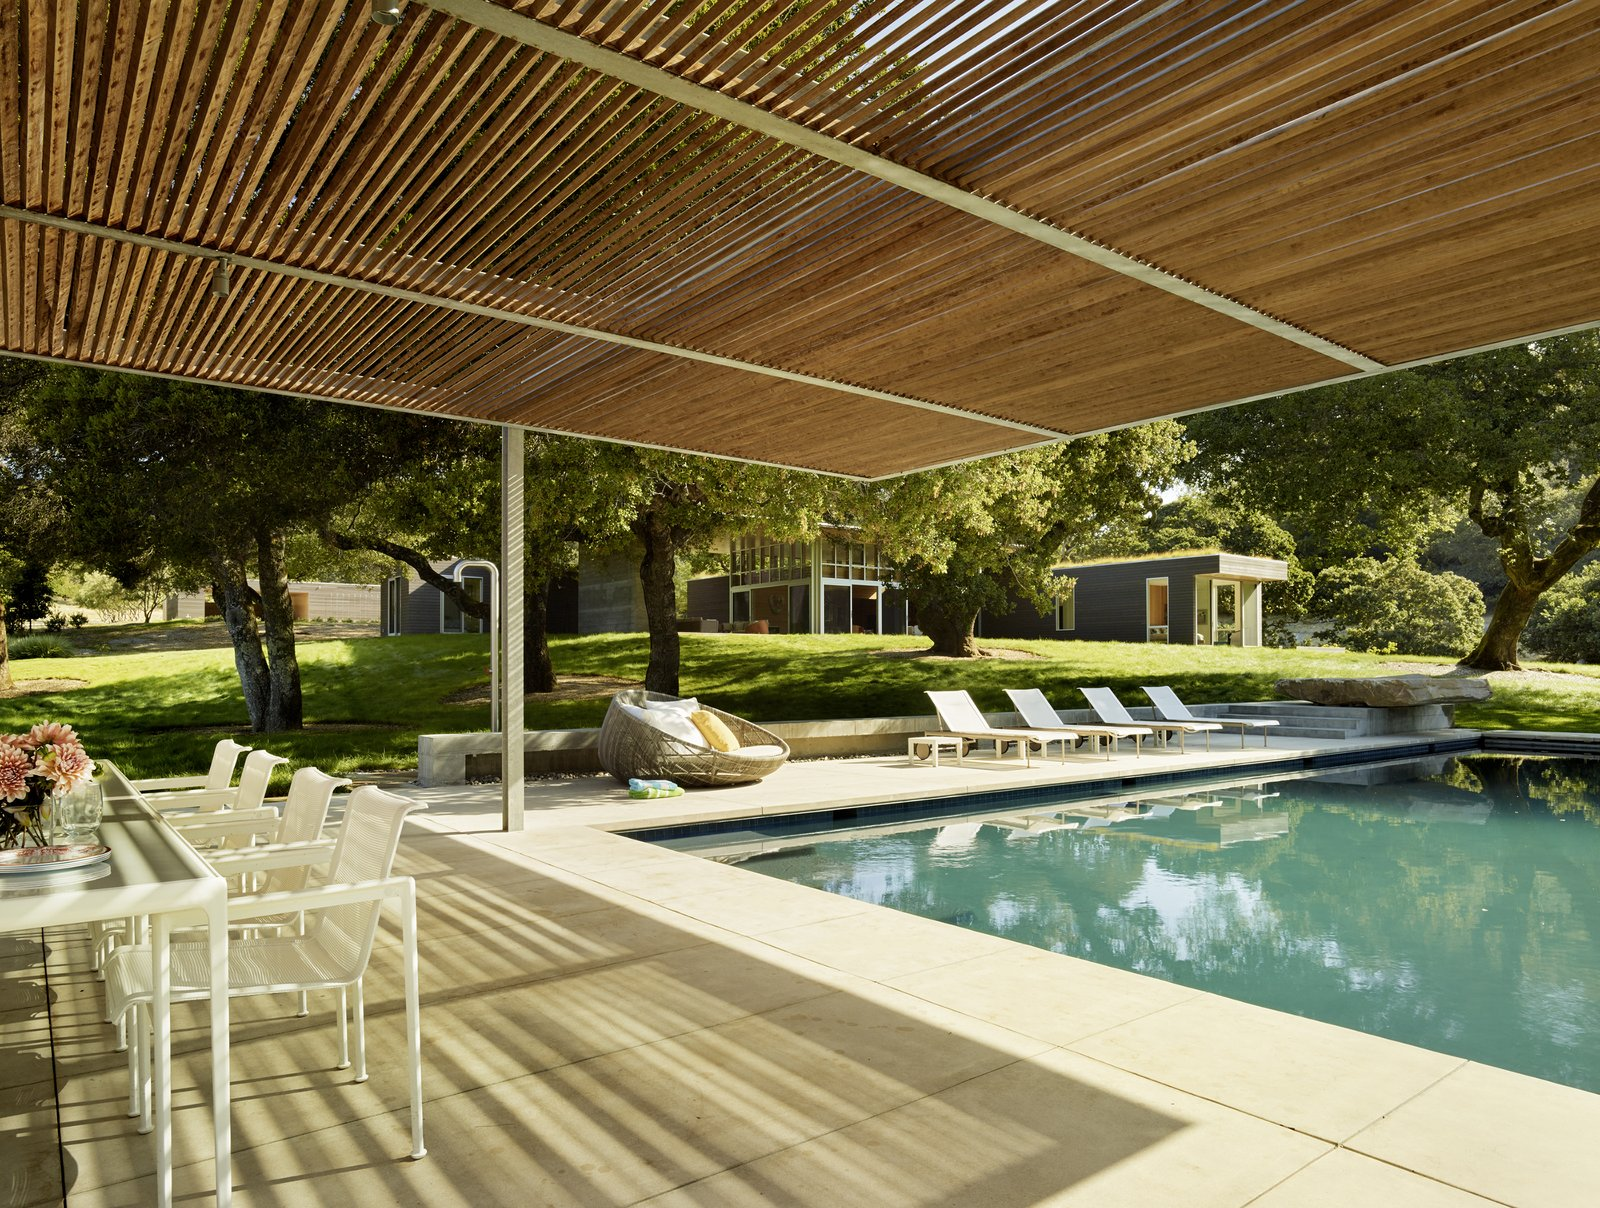 #TurnbullGriffinHaesloop #exterior #pool #shading Sonoma Residence by Turnbull Griffin Haesloop Architects